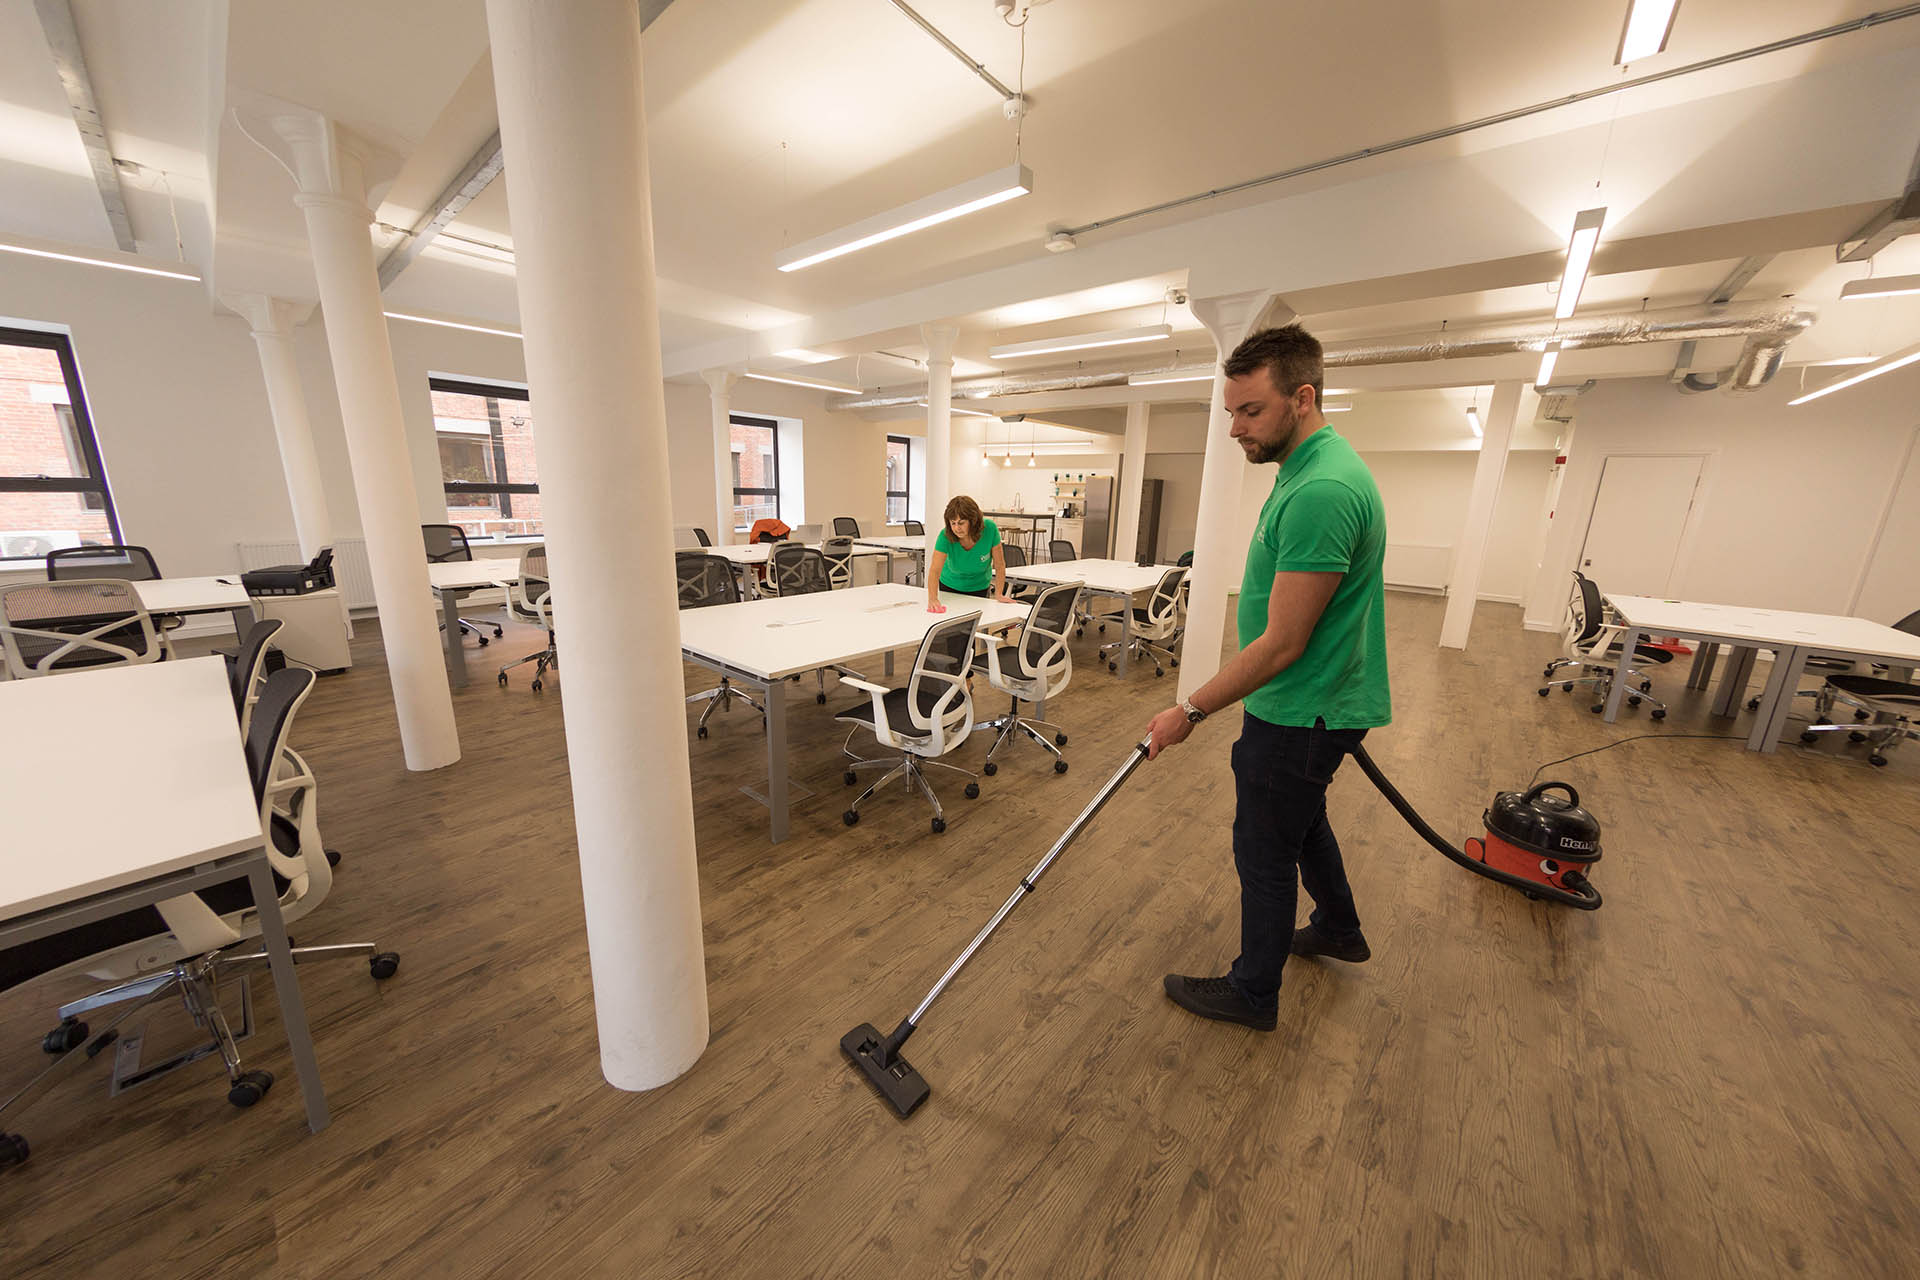 Snowdrop Cleaning Services provide Office Cleaning and Commercial Cleaning in Edinburgh